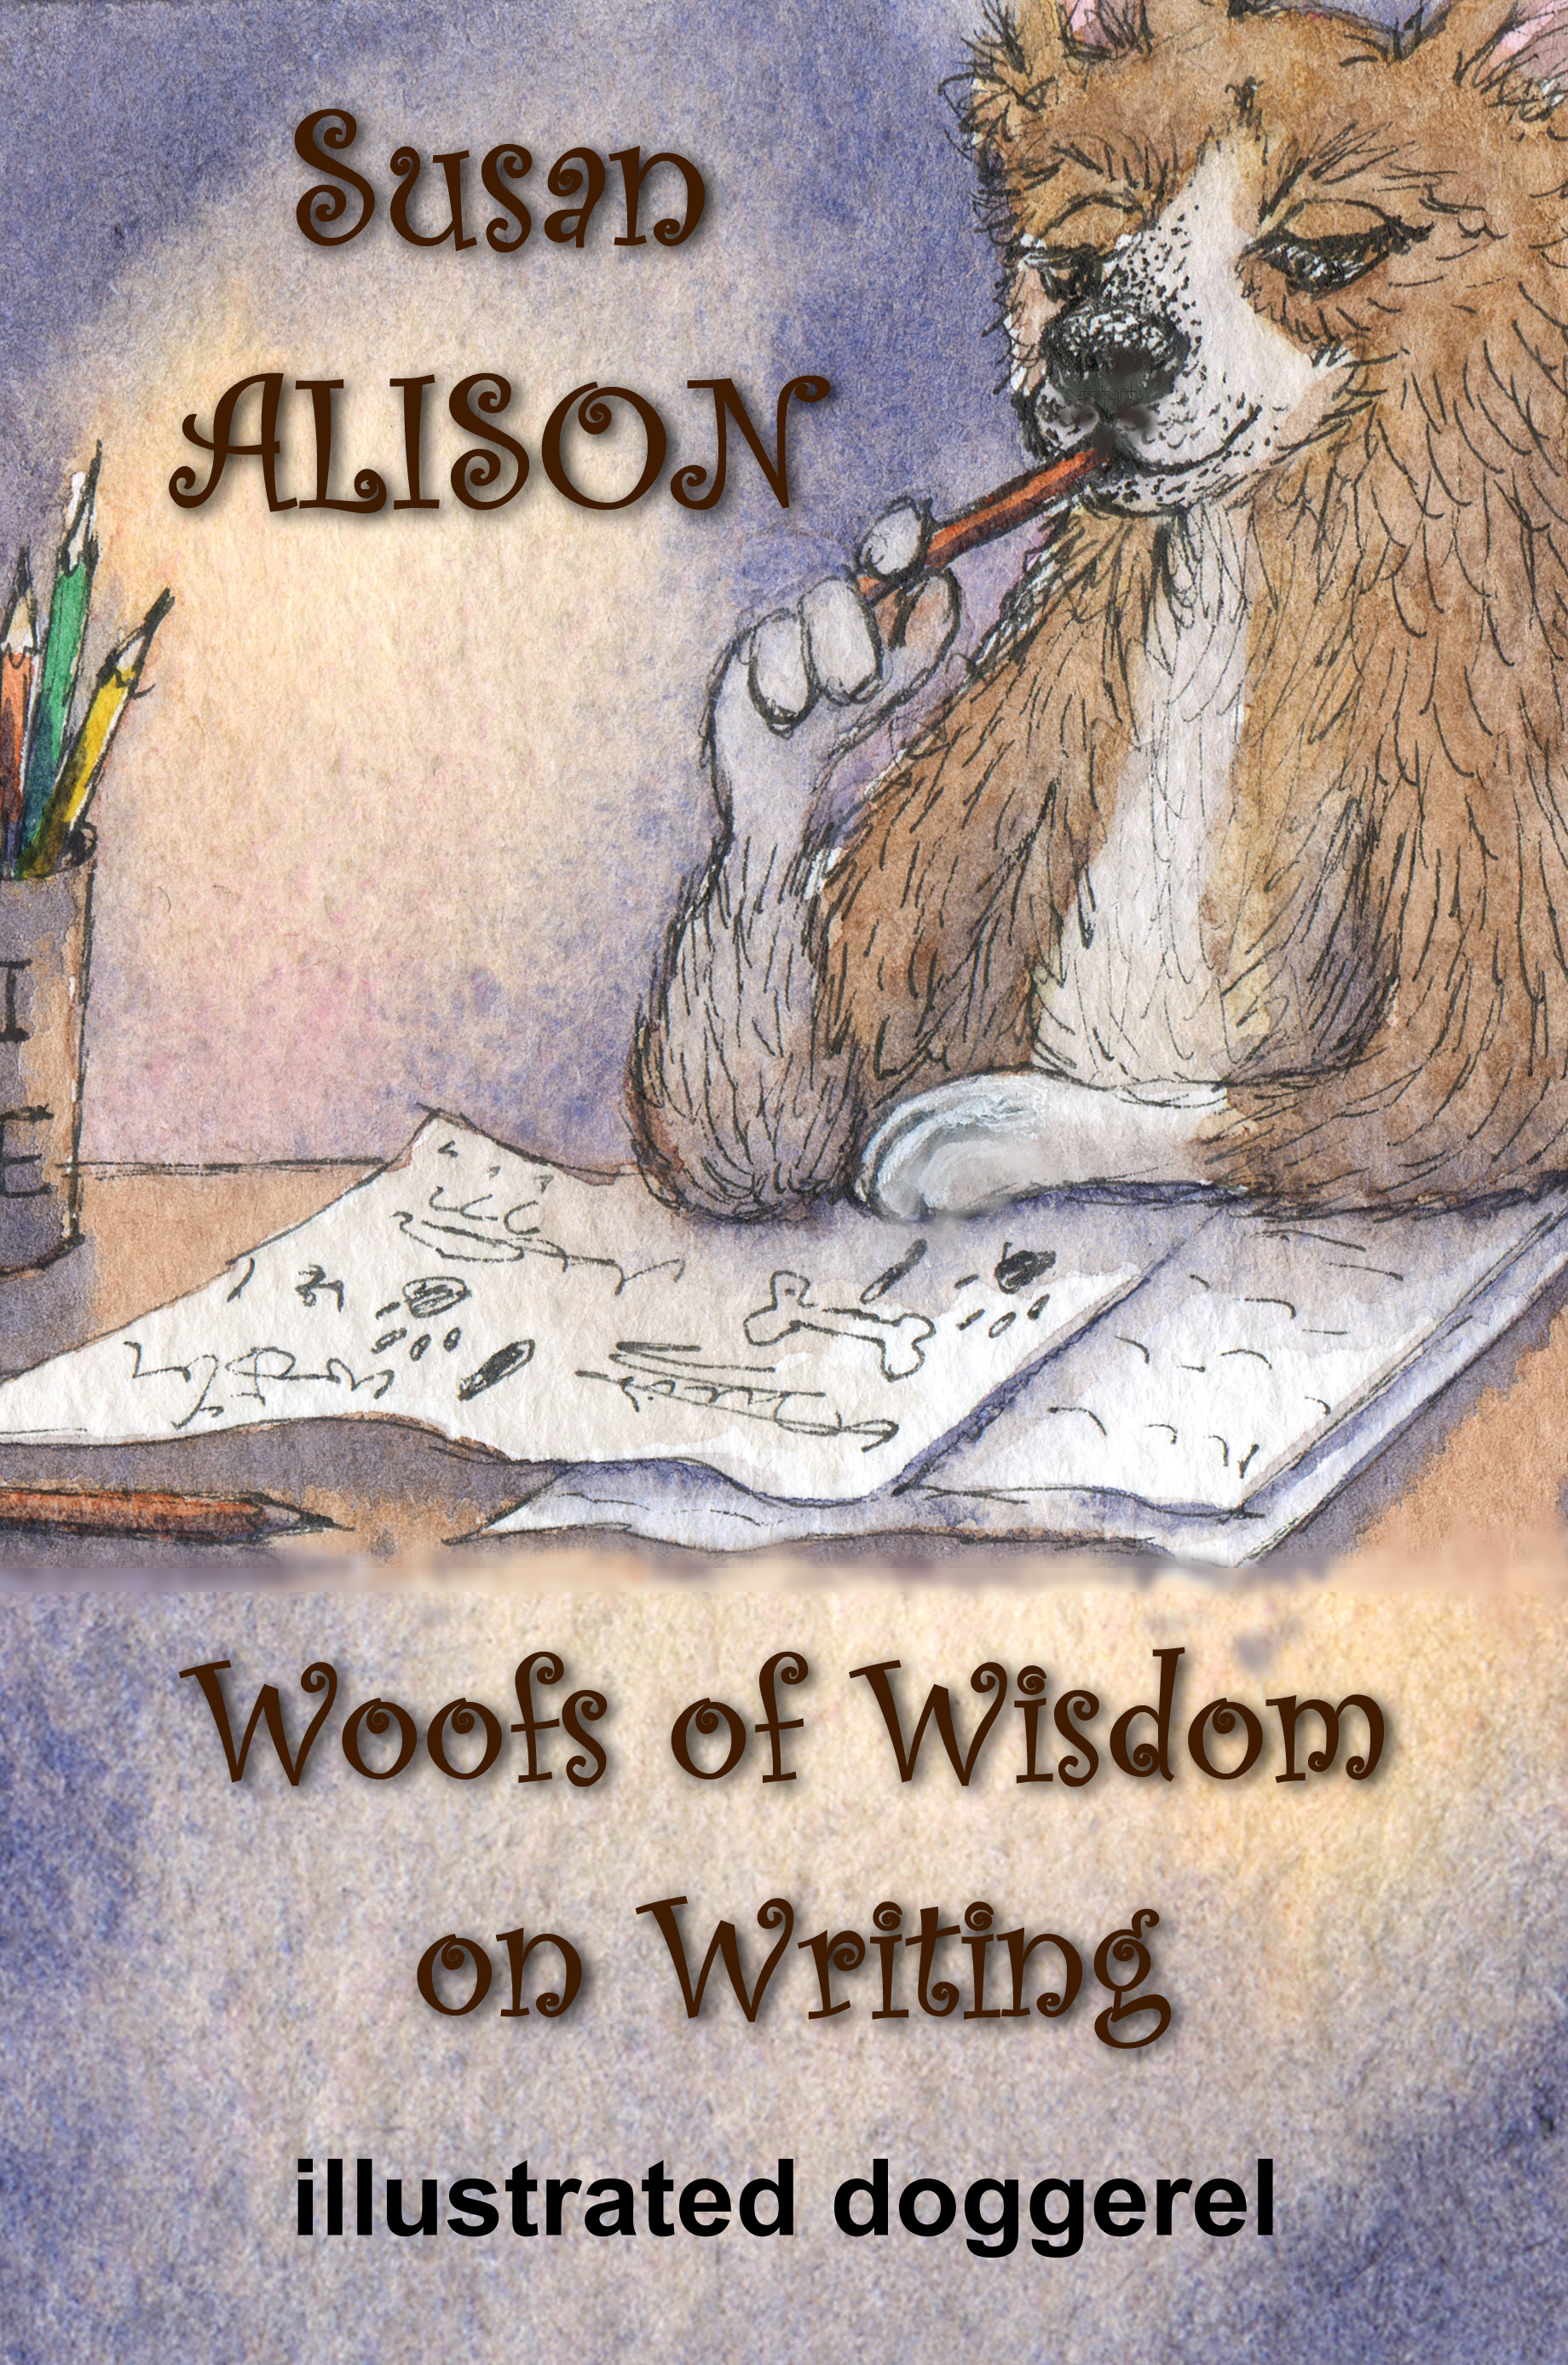 Woofs of Wisdom on writing by Susan Alison